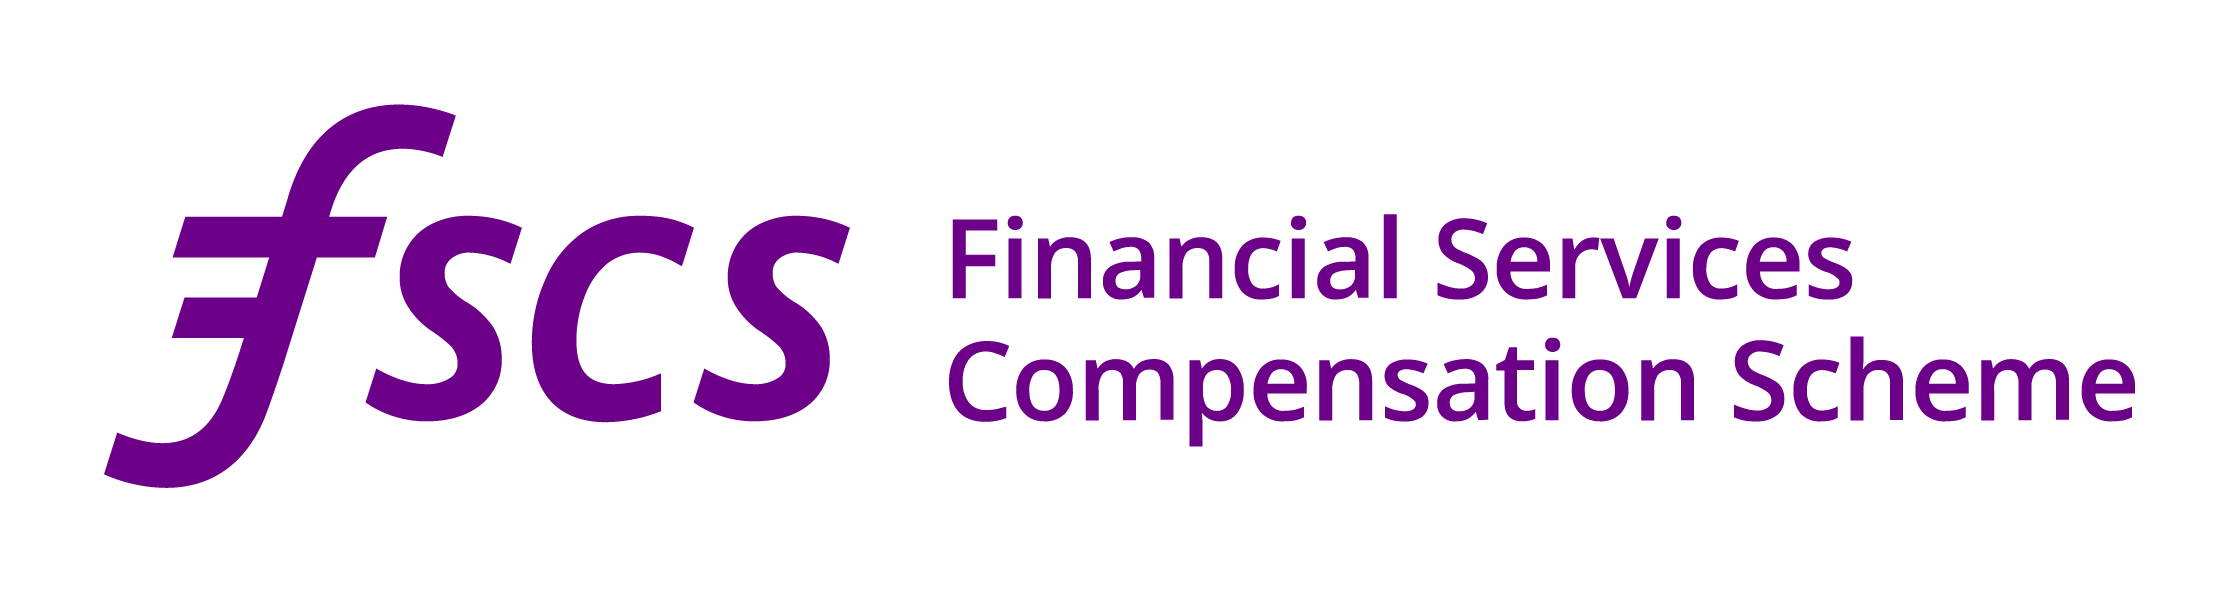 FSCS-logo-purple-horizontal-RGB